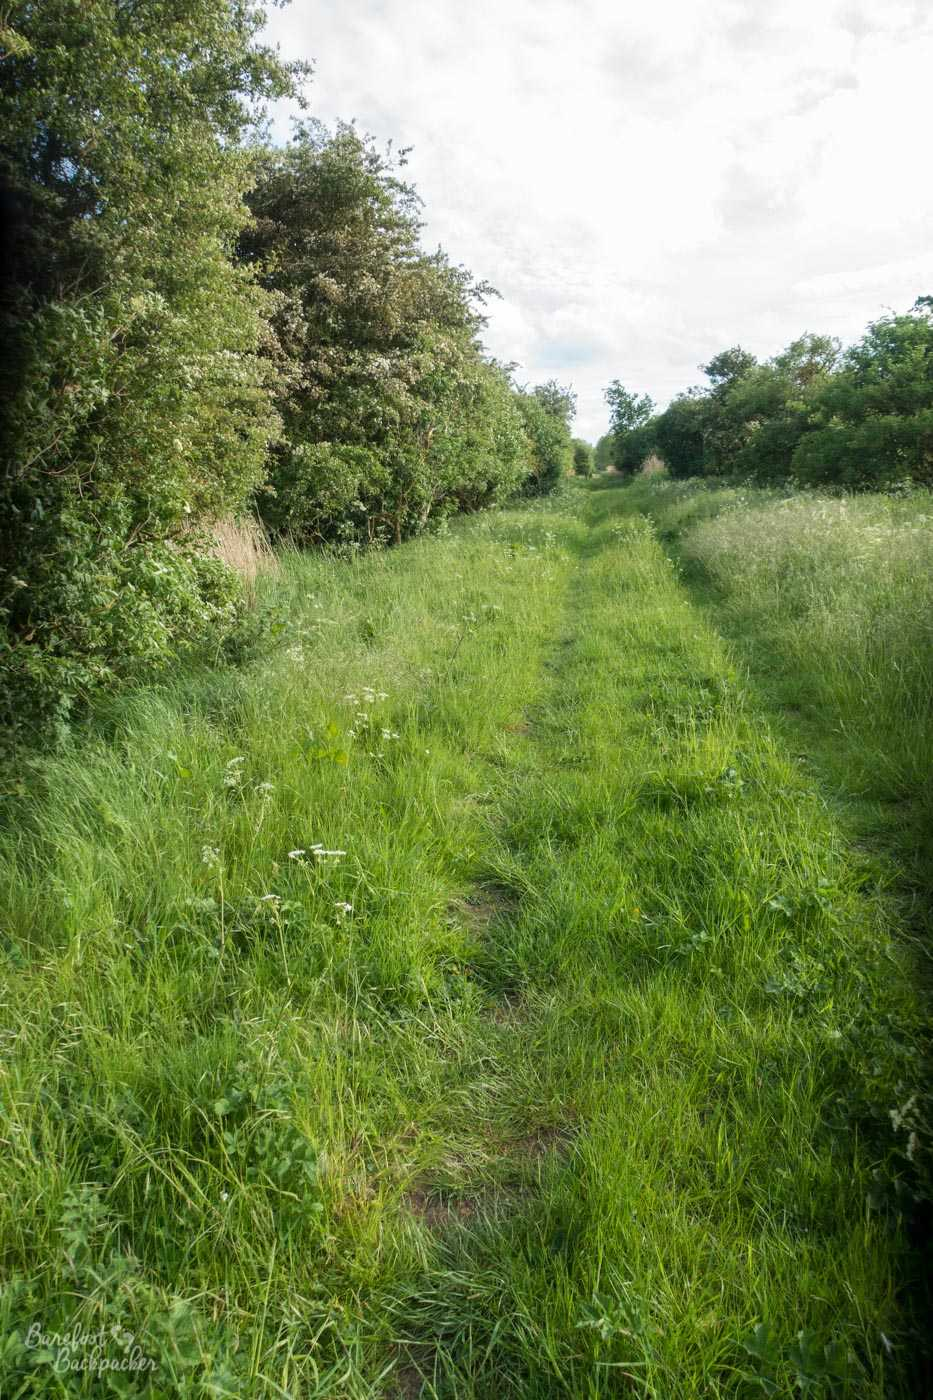 To the left is a large hedge. To the right is some overgrown grass and a line of bushes. In the grass, a trail made by a series of vehicles leads the way into the distance. This is very much Not The Norfolk Coast Path.